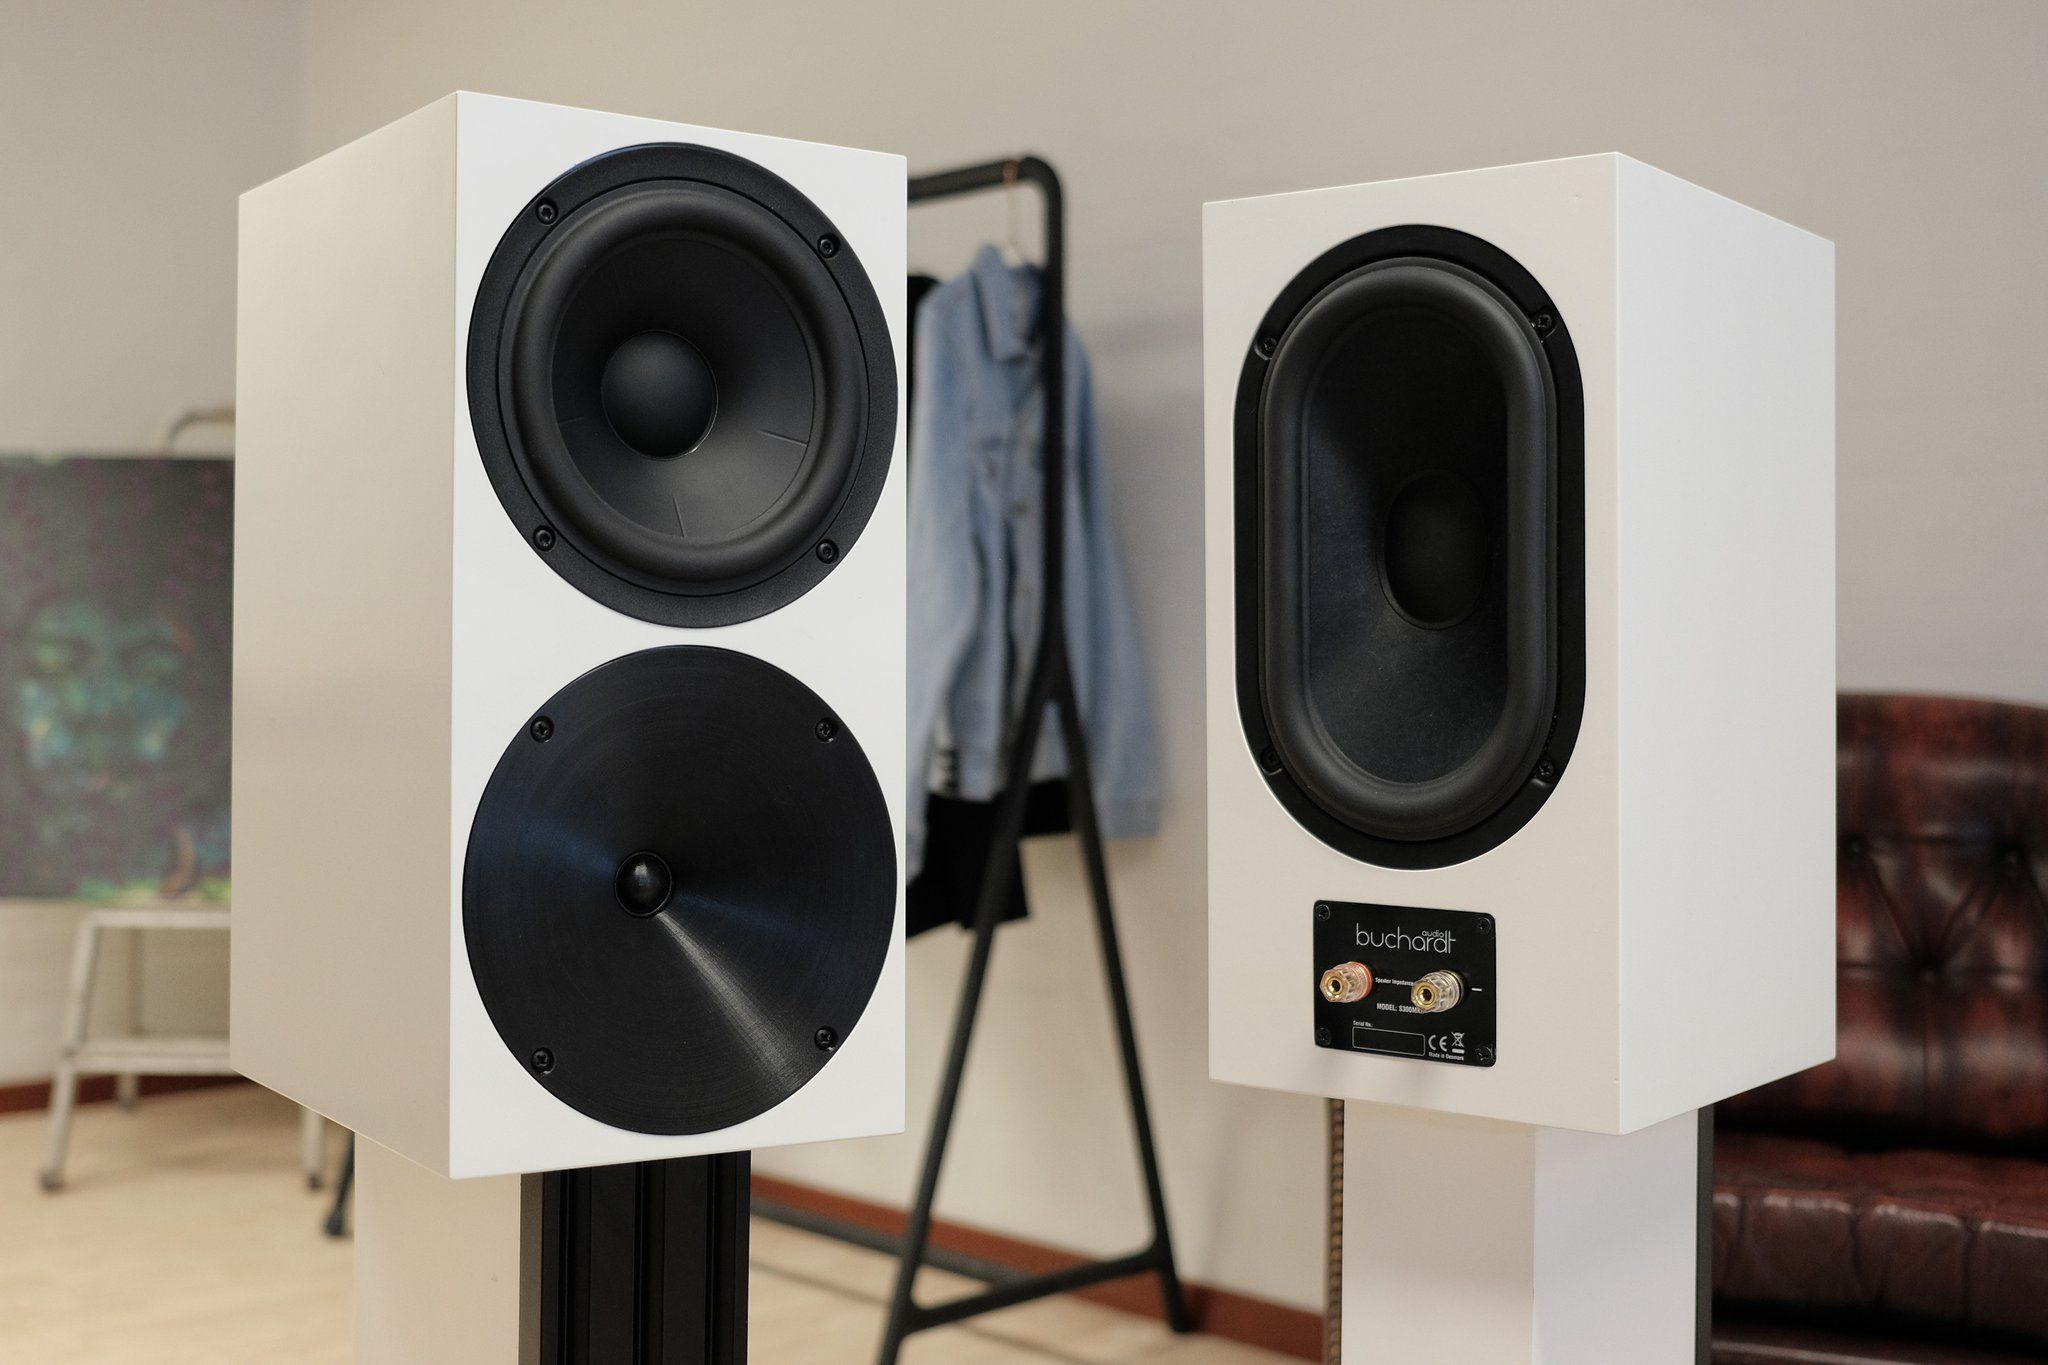 Speaker prices listed are per pair  Pre-order discount run